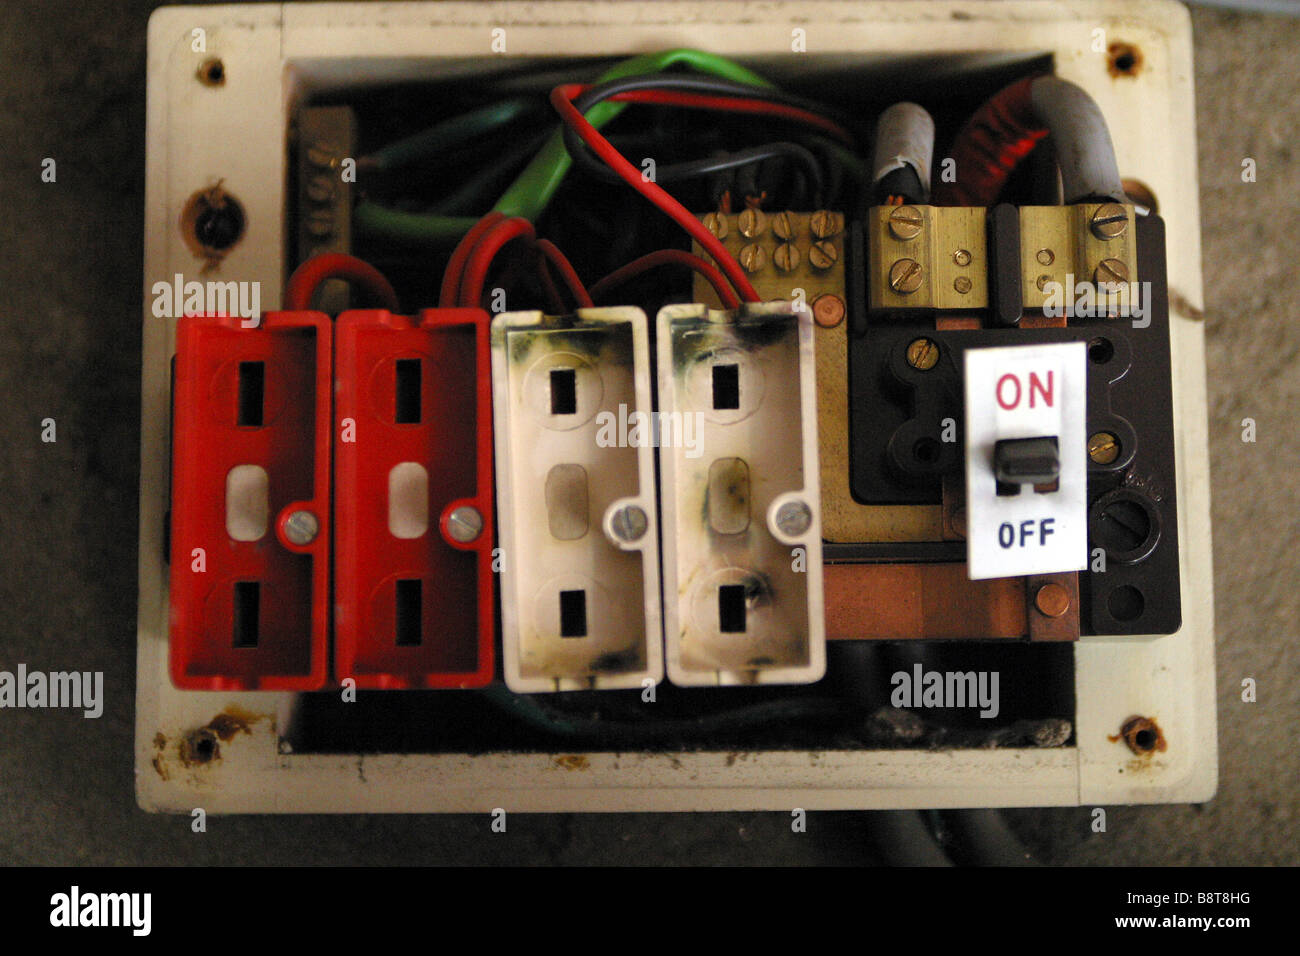 fuse box house stock photos fuse box house stock images alamy rh alamy com old house fuse box for sale old house fuse box parts for sale